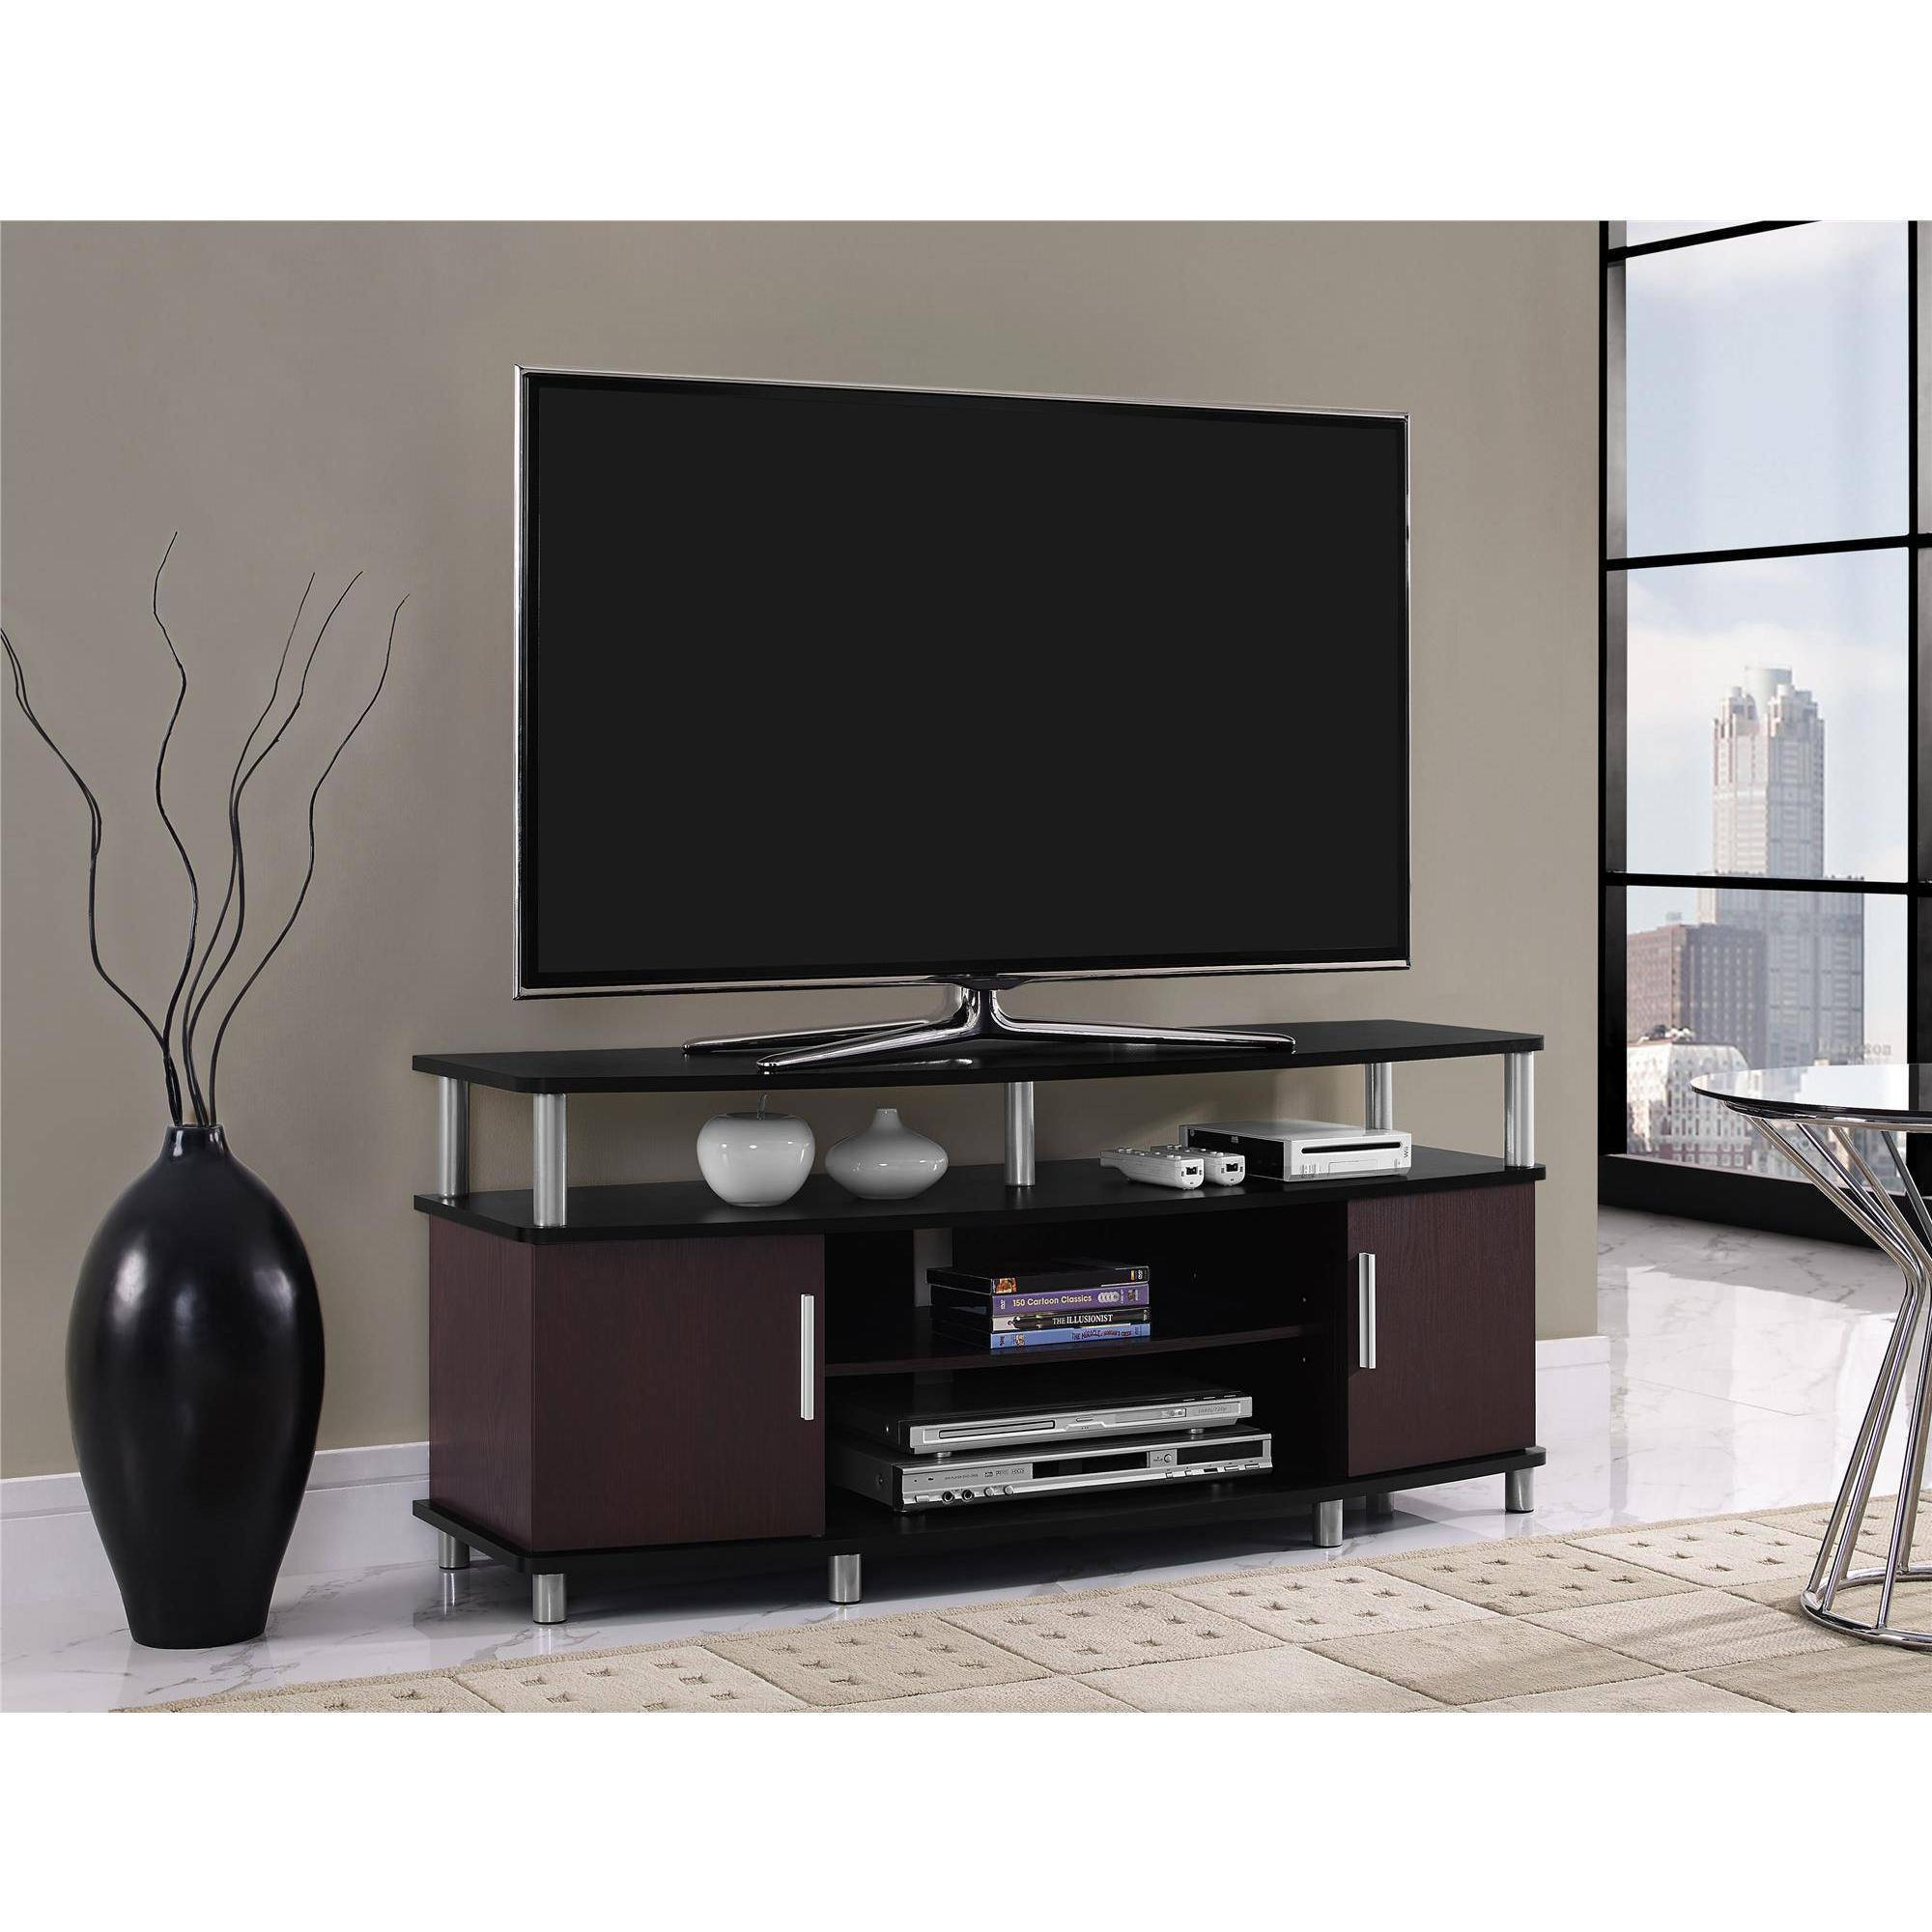 "Cordoba Tv Stand With Mount, For Tvs Up To 52"" - Walmart with regard to Retro Corner Tv Stands (Image 2 of 15)"